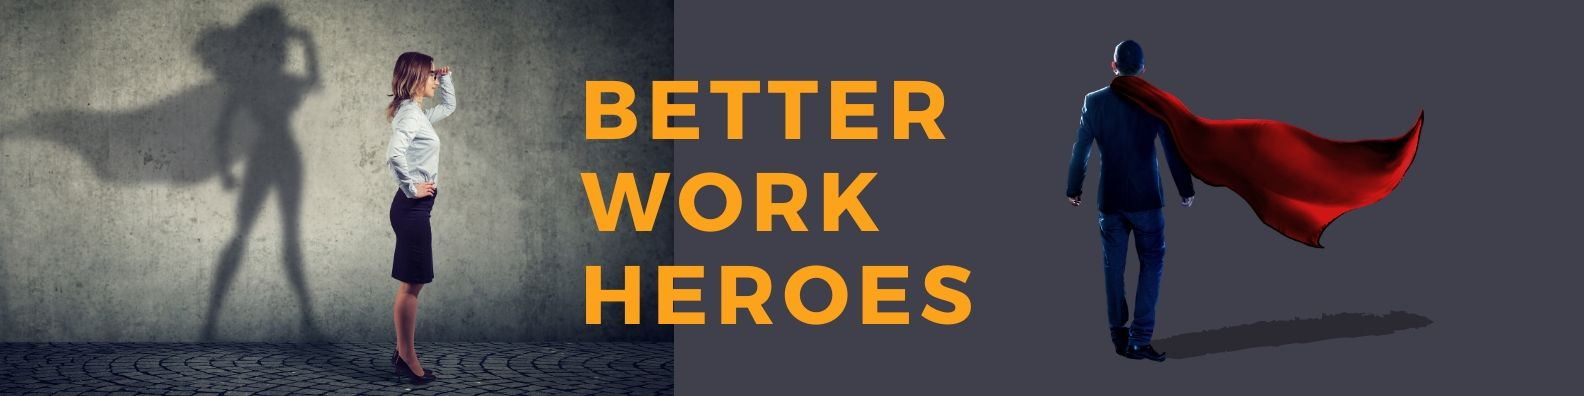 Career Improvement For Talented Individuals Better Work Heroes